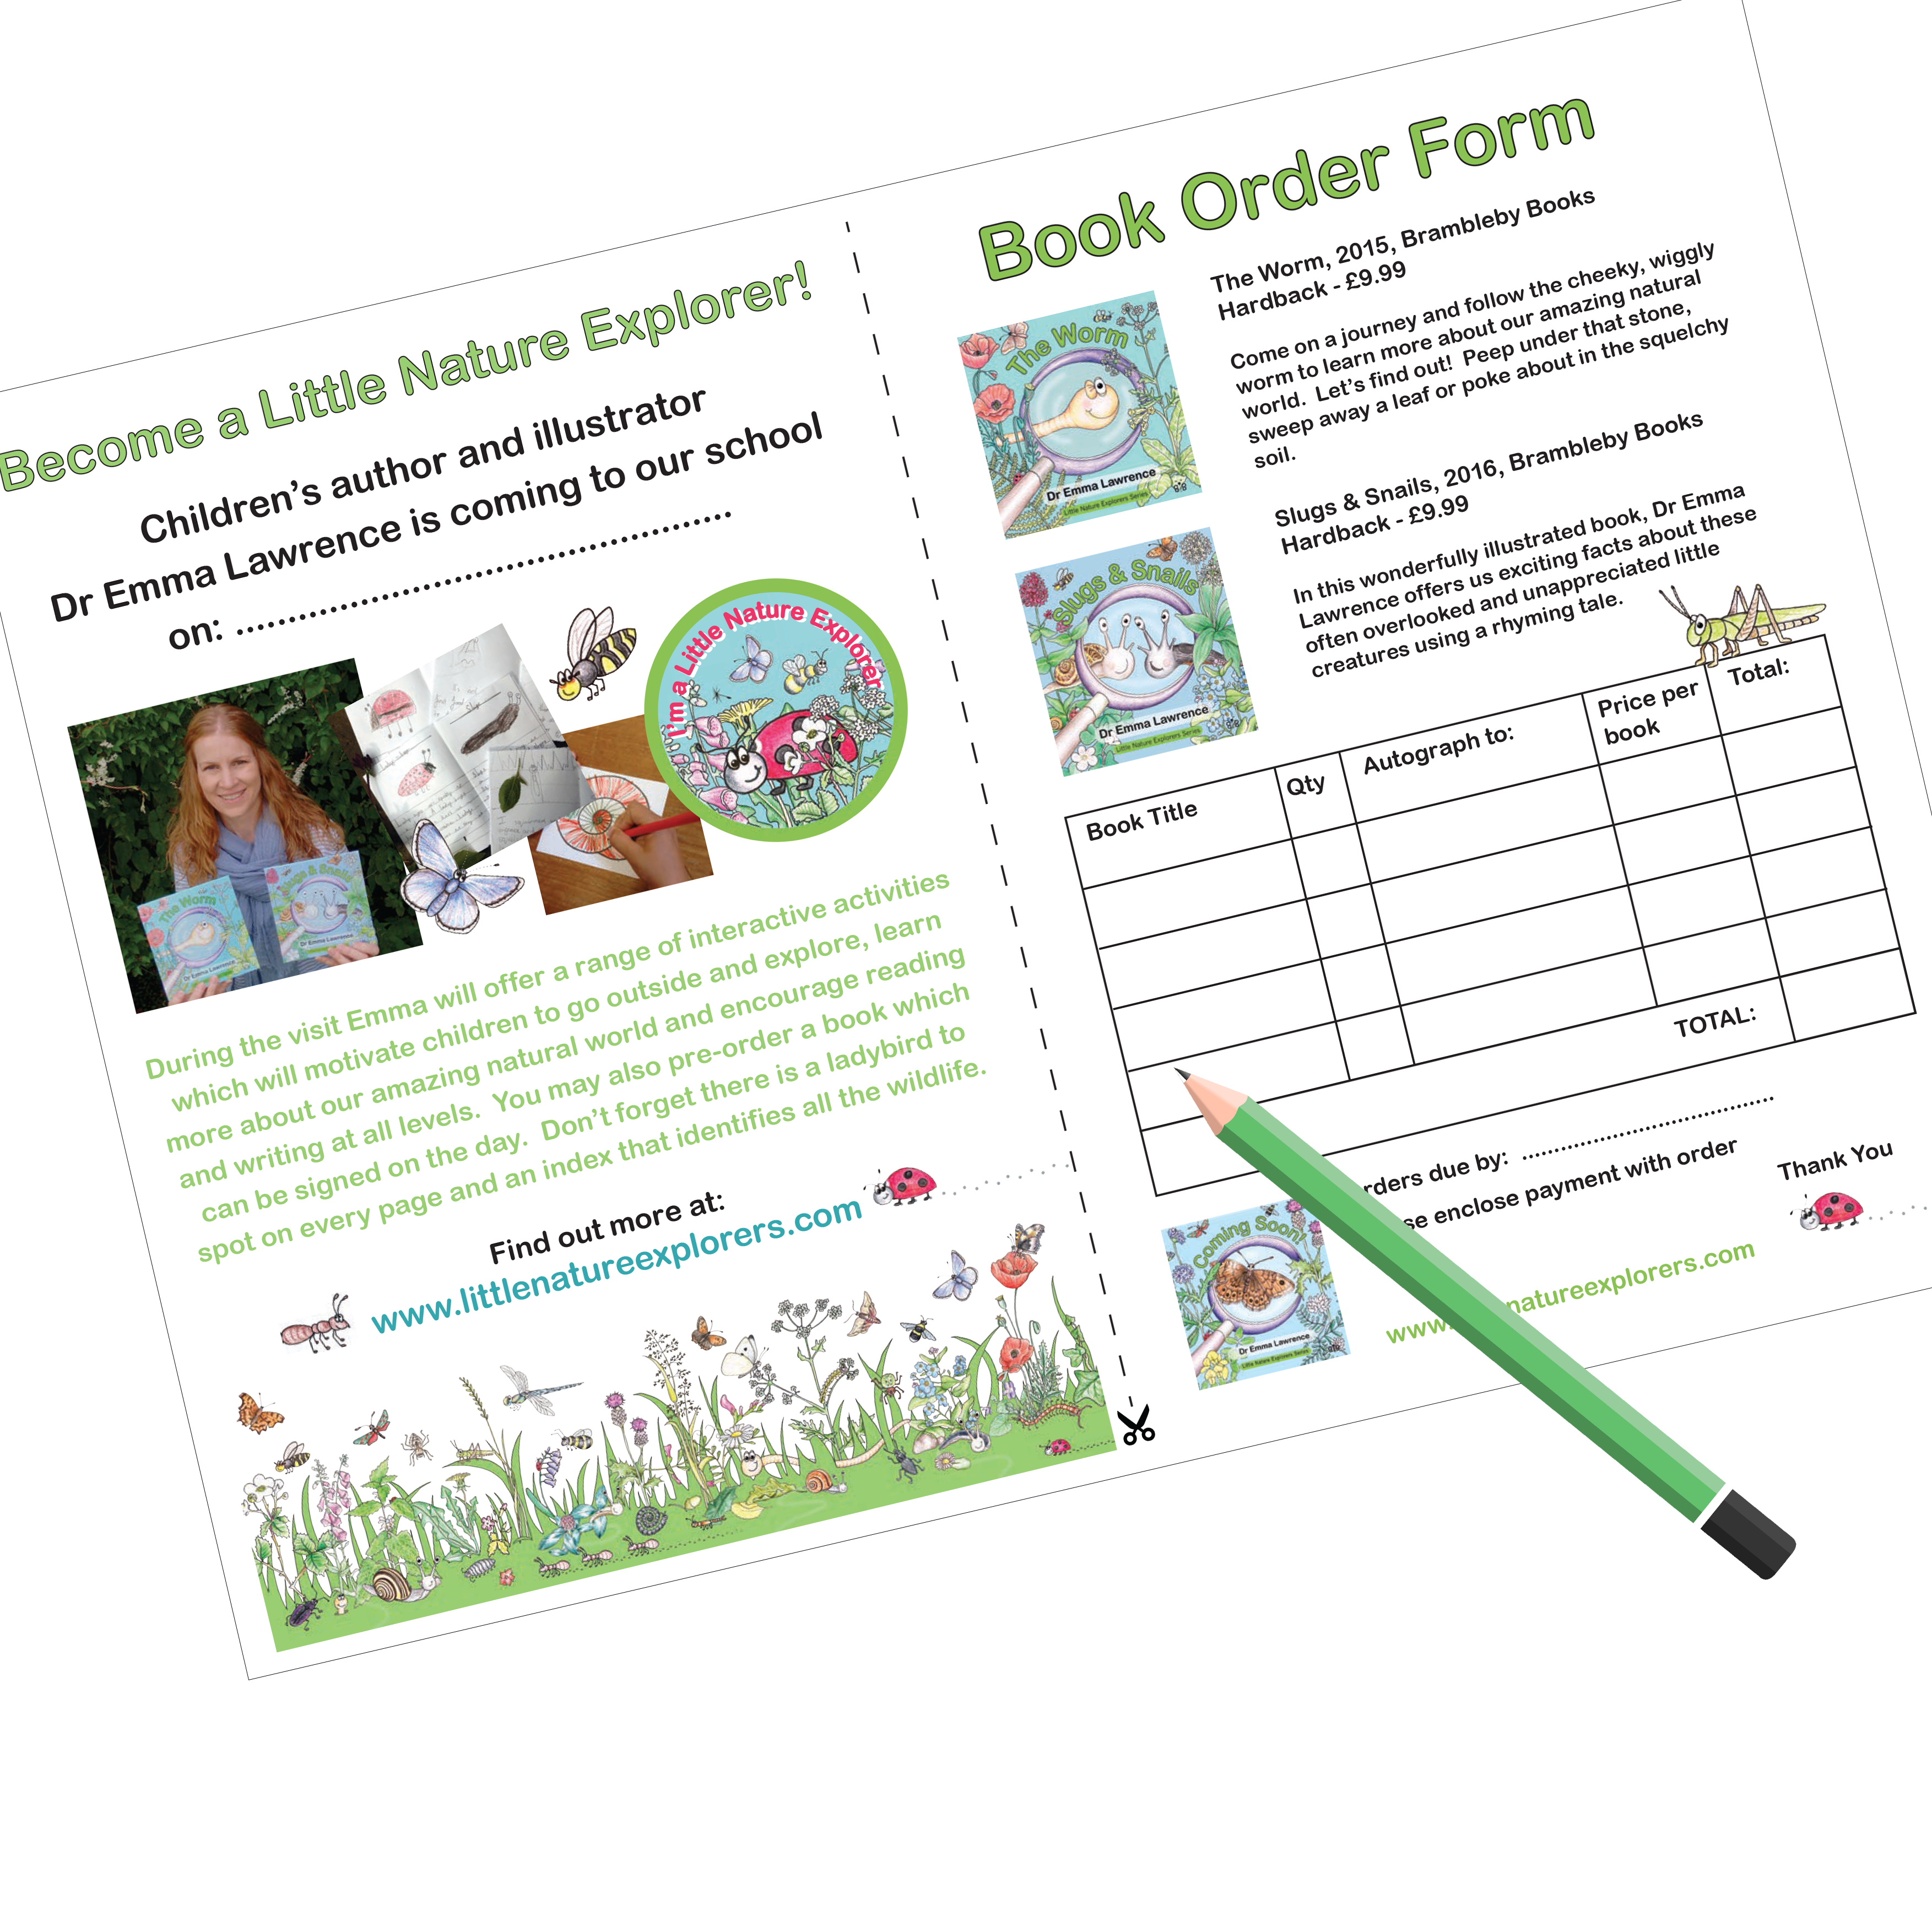 School visit flyer book order form